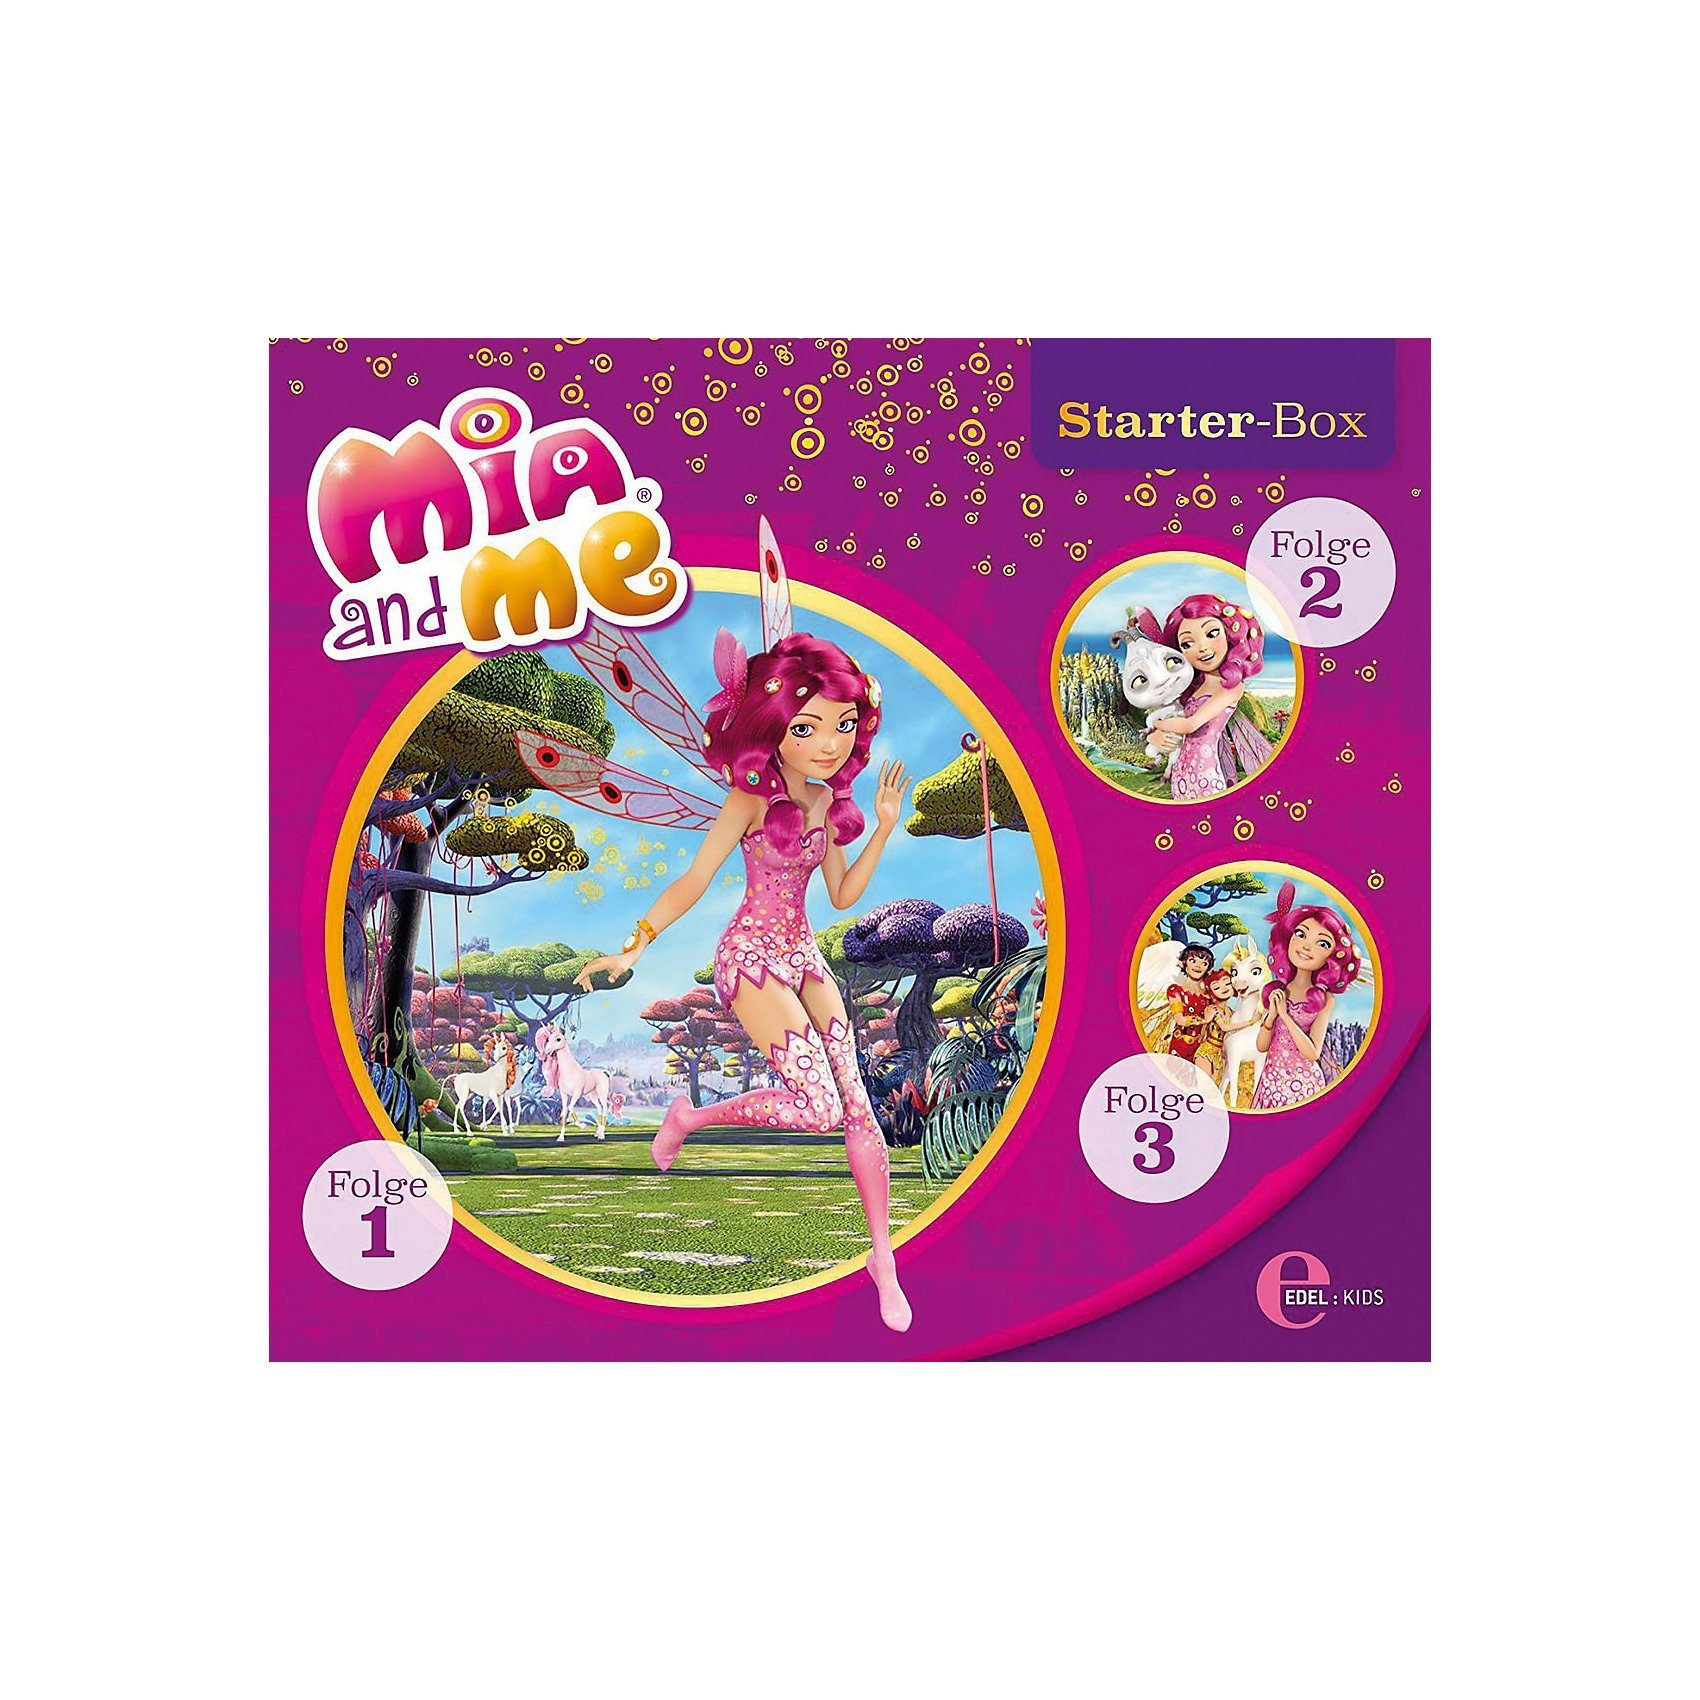 Edel CD Mia and Me - Starter-Box (Folge 1-3)